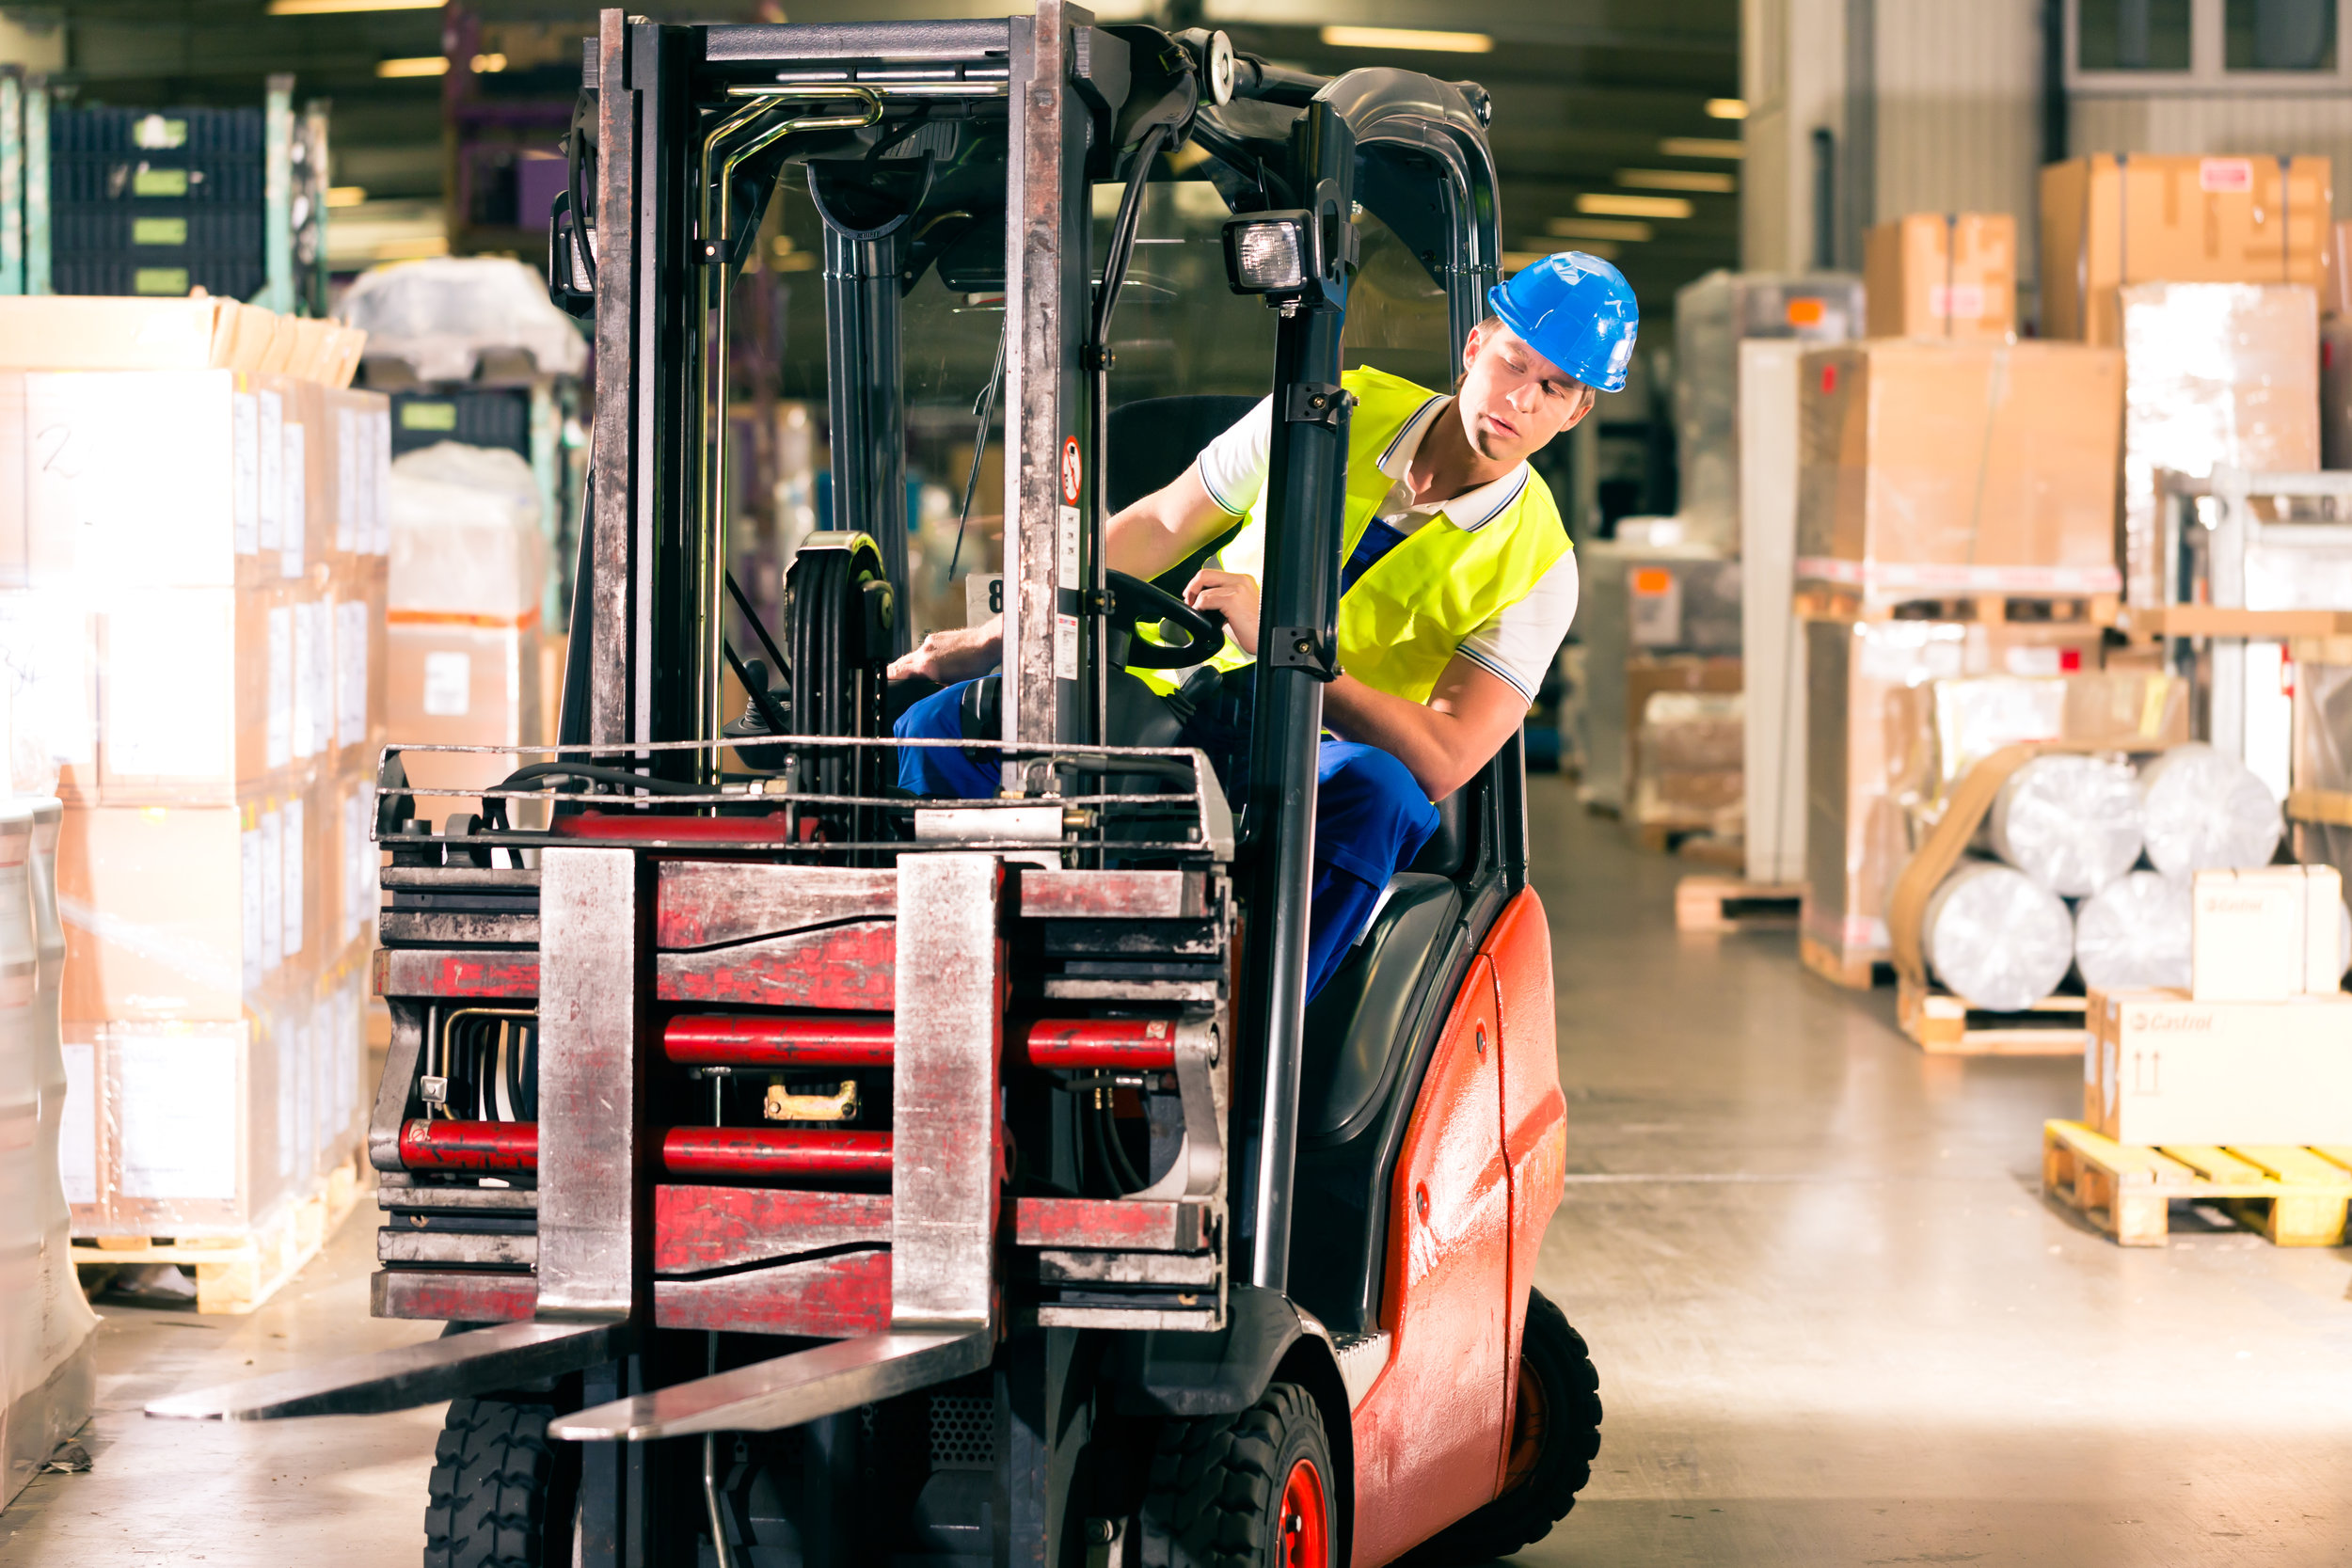 INDUSTRIAL - Logistics never stops, so your equipment can't either. We offer industrial propane delivery to keep your forklifts ready to keep your business moving.